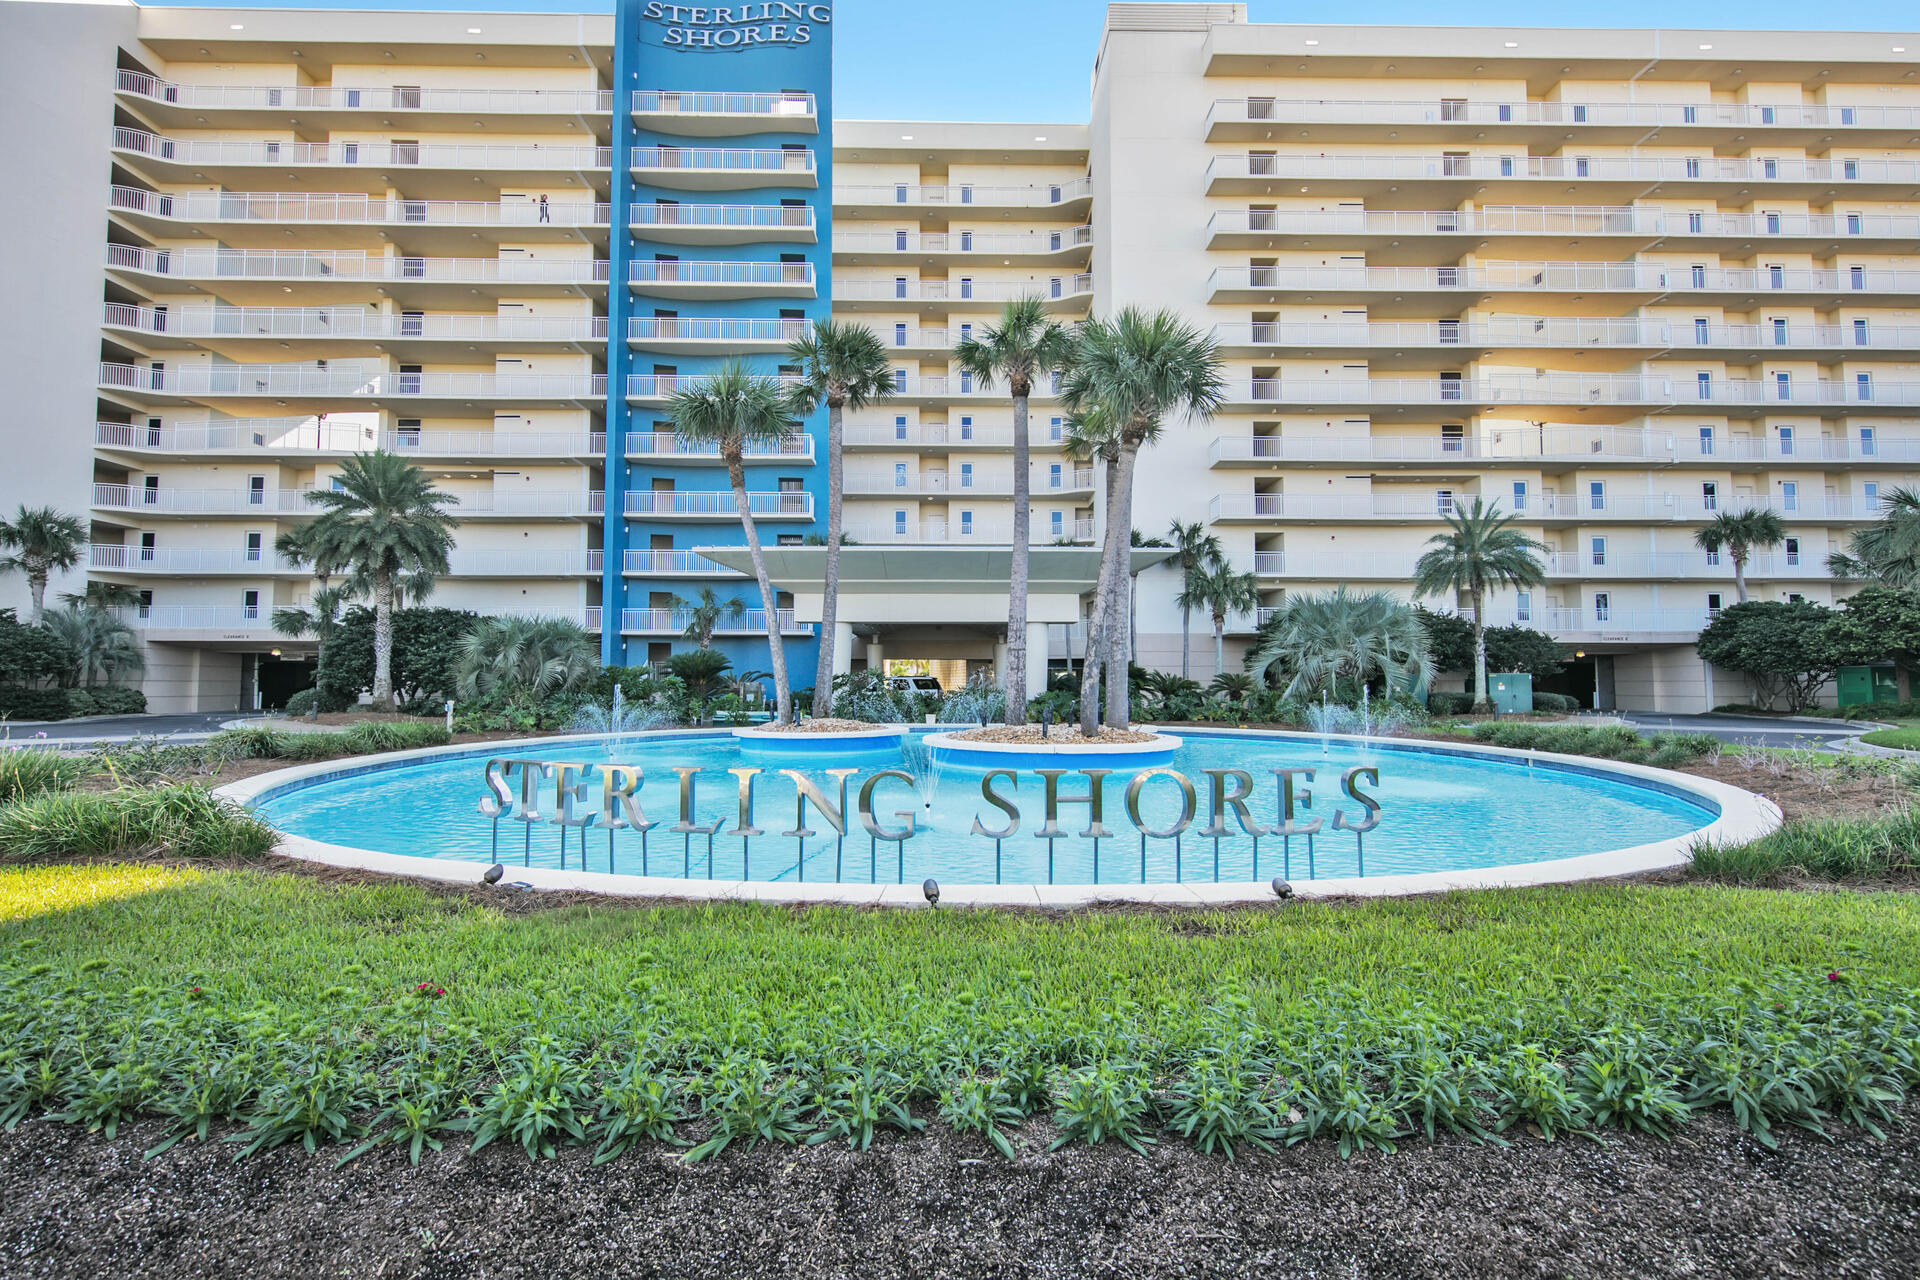 Large 3 bedroom, LOW FLOOR in Sterling Shores!!  This condo is offered fully furnished and has several recent updates within the last couple of years including new luxury plank vinyl flooring, new granite countertops & back splash in the kitchen and new stainless appliances. This large 3 bedroom 2 bath unit is located just across from the beach.  It also features a large balcony.  Don't like dealing with elevators?  This could be the unit for you!  Located on the 2nd floor you have the option of a quick walk down just one flight of stairs if you are in a hurry. Sterling Shores amenities include private beach, beach club, large 4500 sq. ft. pool along with a 2nd gulf front pool.  There is also movie room, fitness room and gated entry to the property.  Sterling Shores is centrally located right in the heart of Destin and is within walking distance to several restaurants and attractions.  Call today!